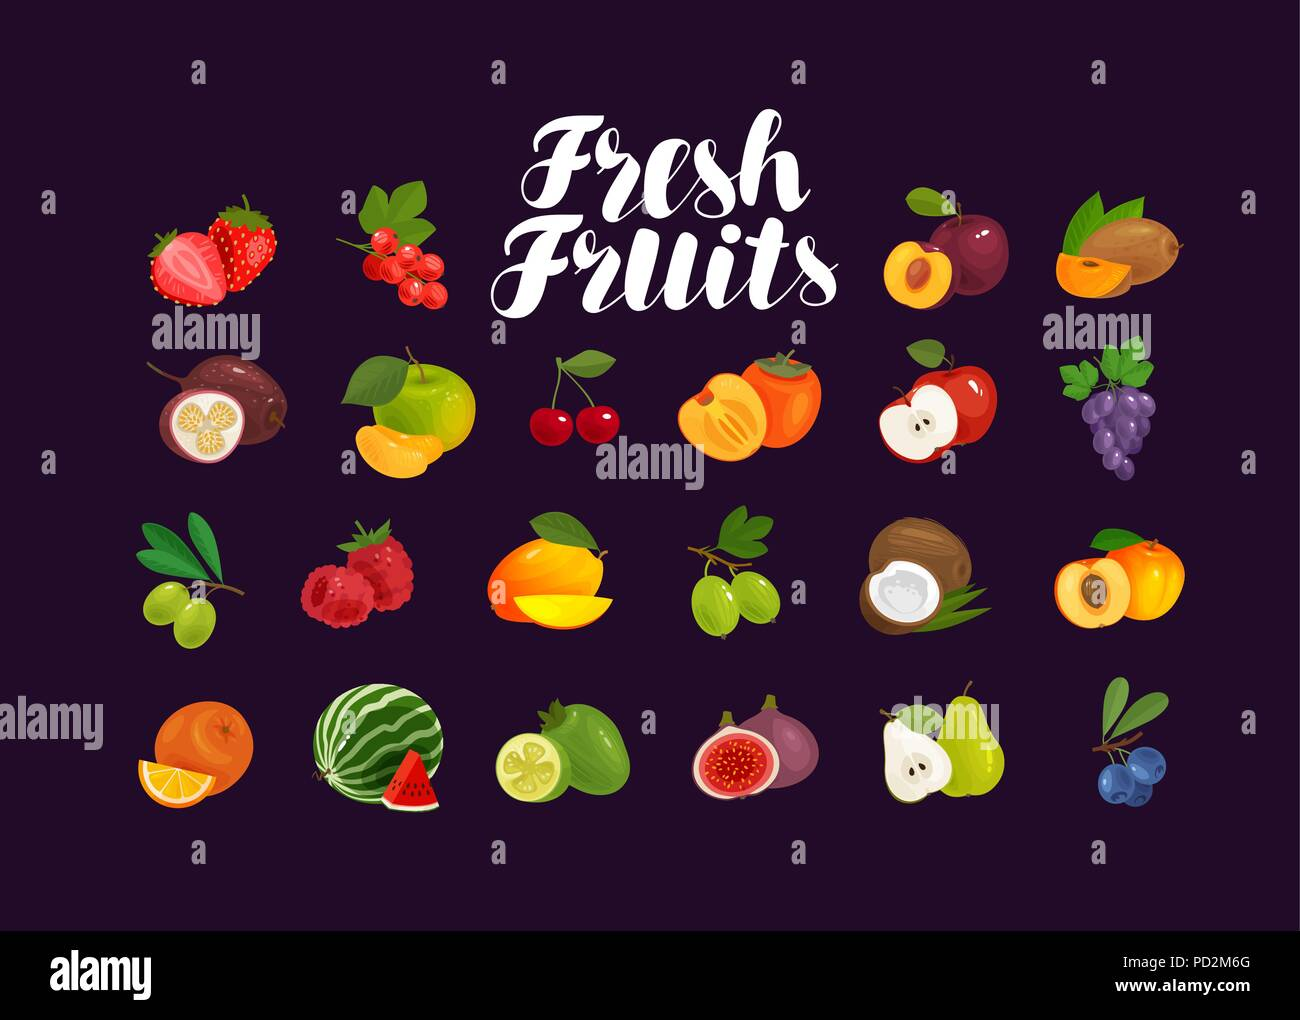 Fruits and berries, set of icons. Food, greengrocery, farm concept. Vector illustration - Stock Image